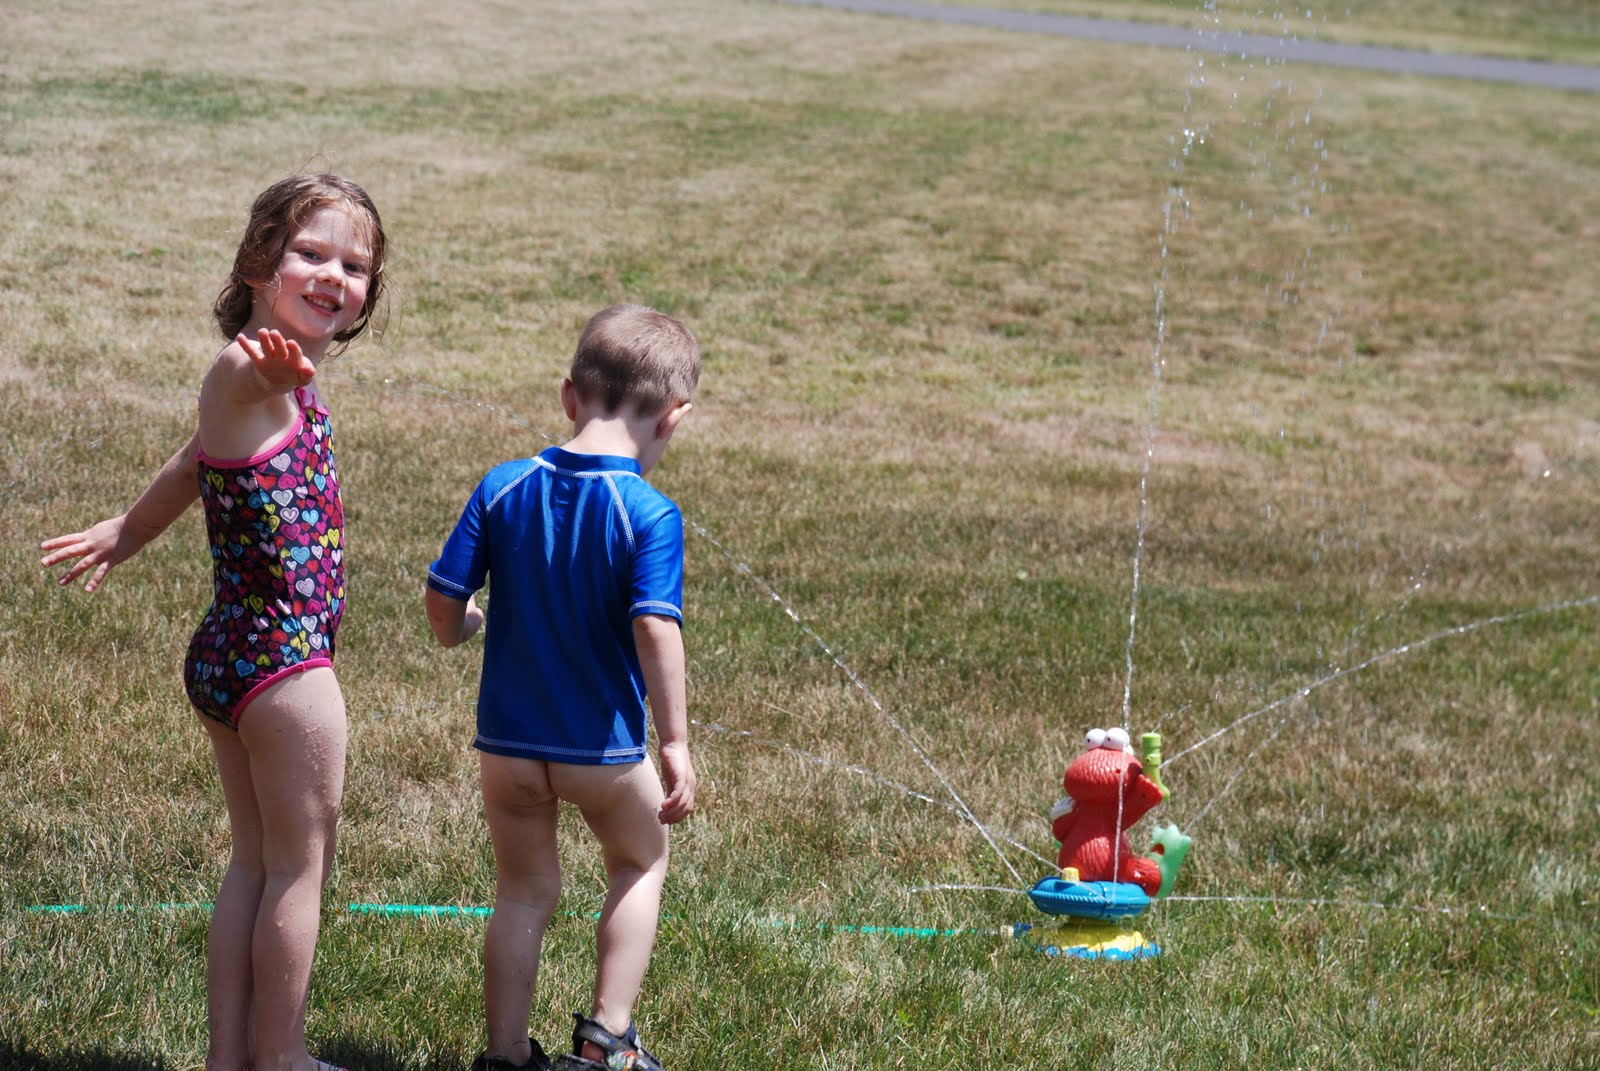 female child pee The kids had a blast in the sprinkler today!! We enjoyed being outside almost all day today!